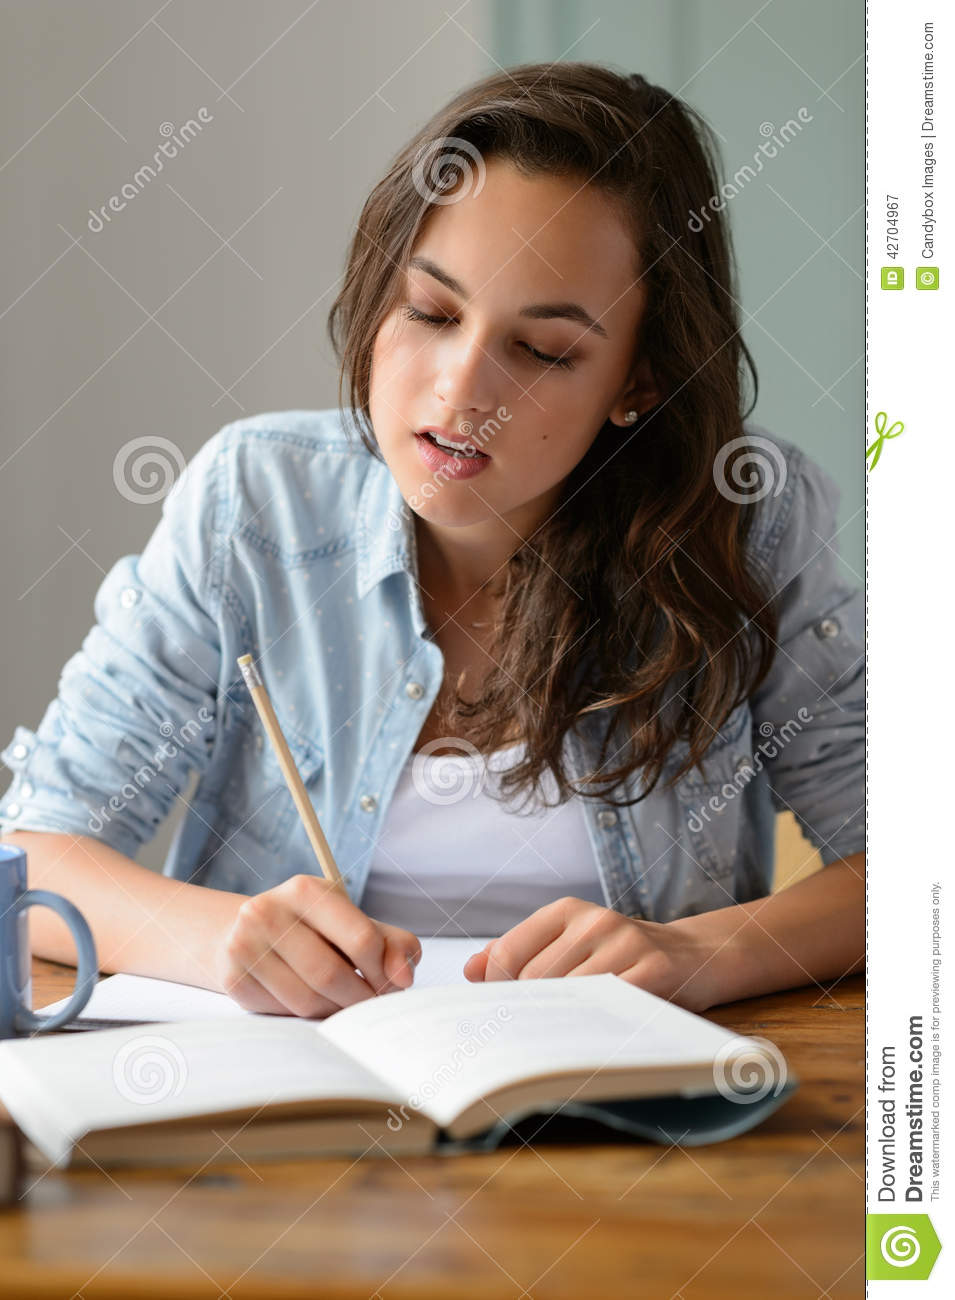 Teenage girl studying book writing notes